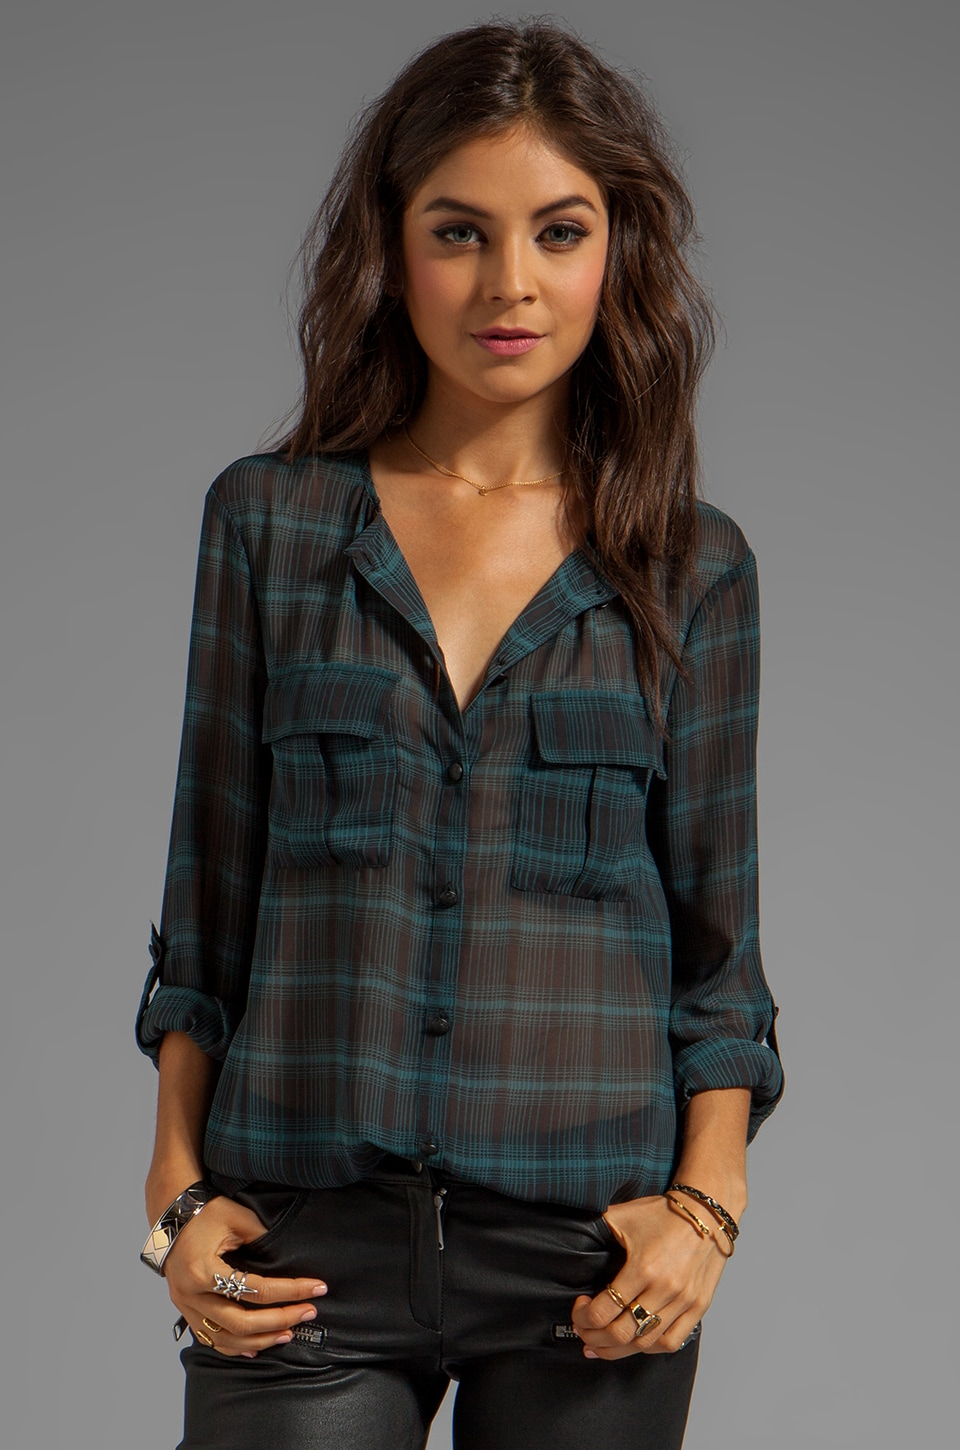 Sanctuary Soft Wovens Plaid Cafe Blouse in Teal Plaid